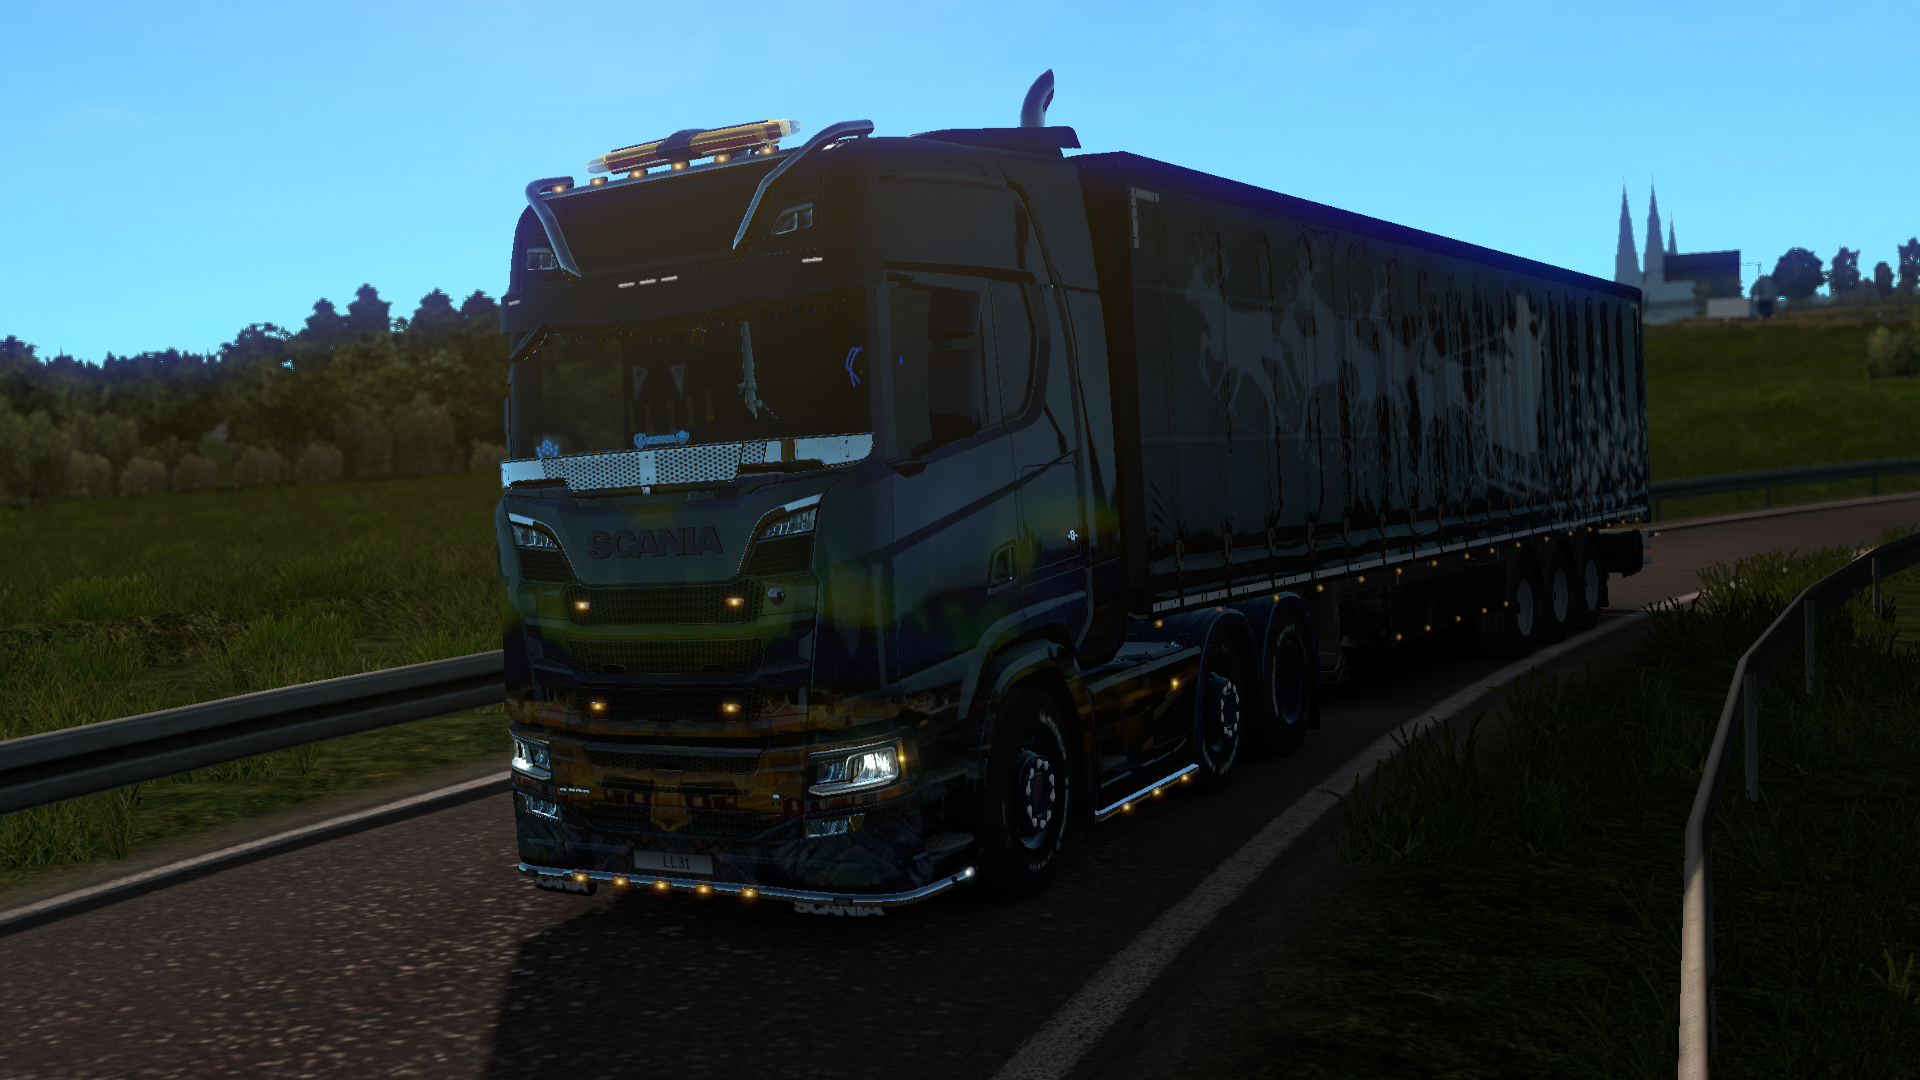 ets2_20181218_162333_00.png